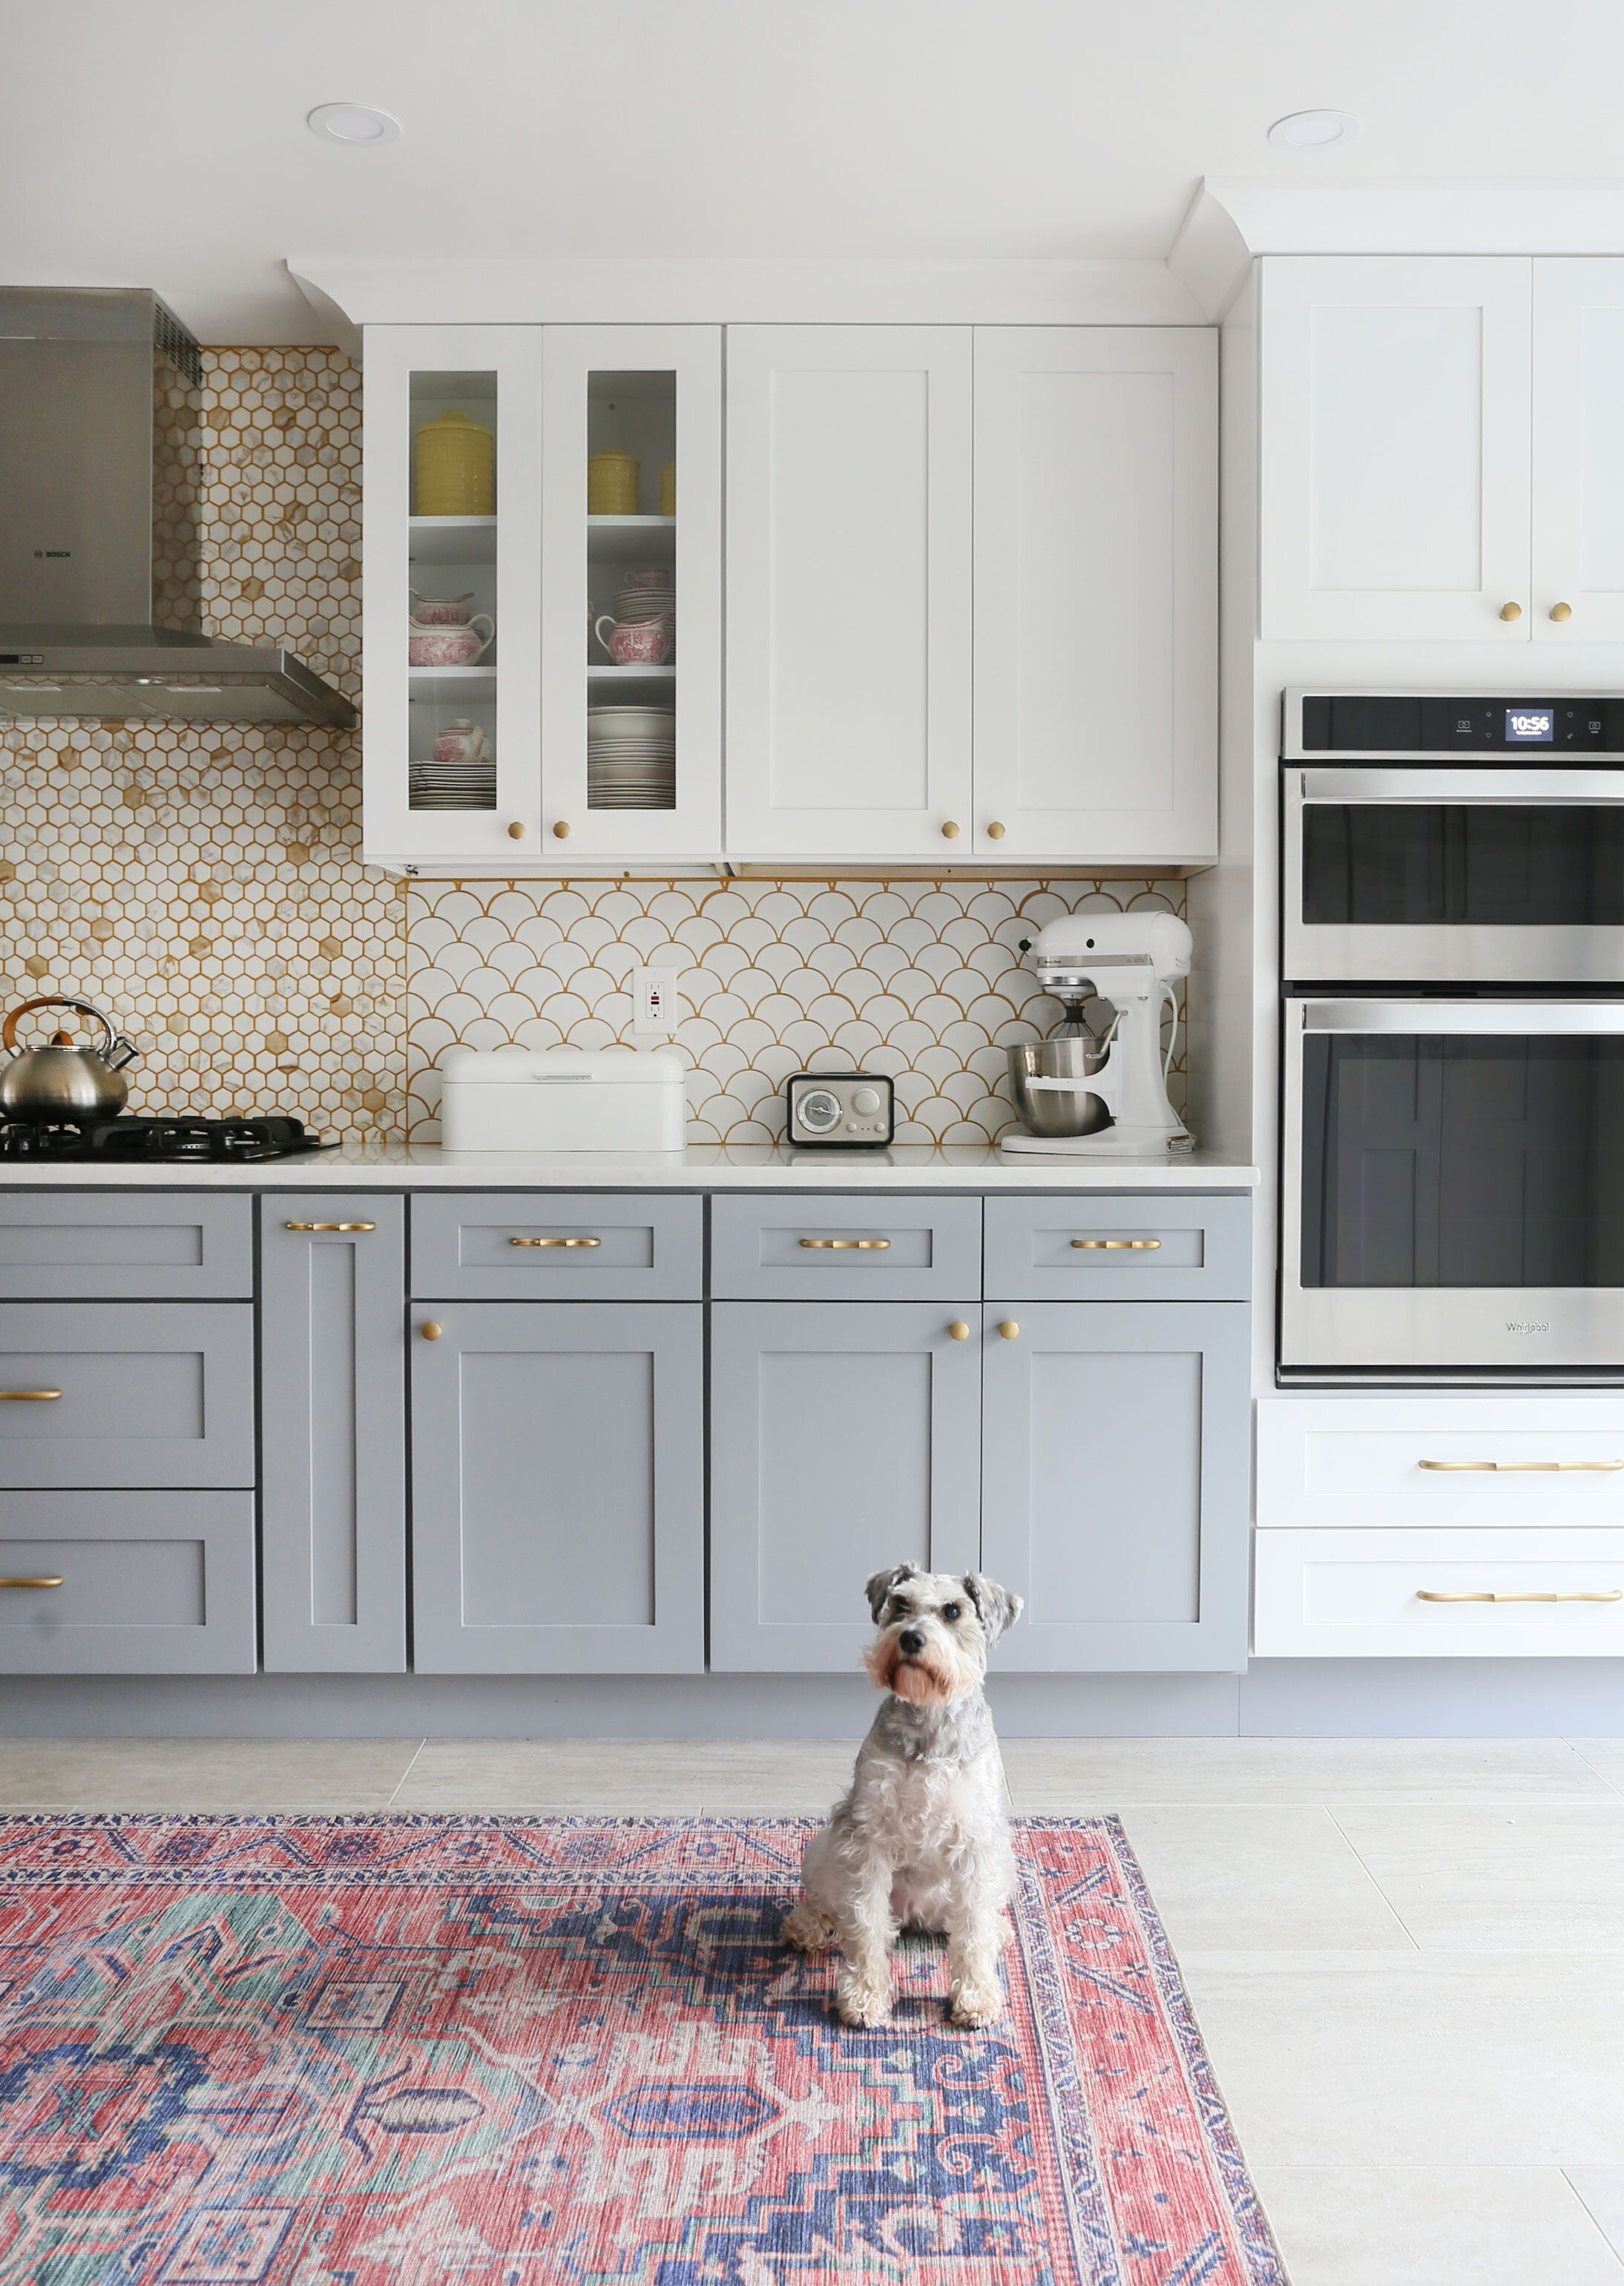 Modern Gray And White Kitchen With Wallpaper And Two Toned Cabinets In 2020 Gray And White Kitchen Kitchen Remodel Small Kitchen Cabinets